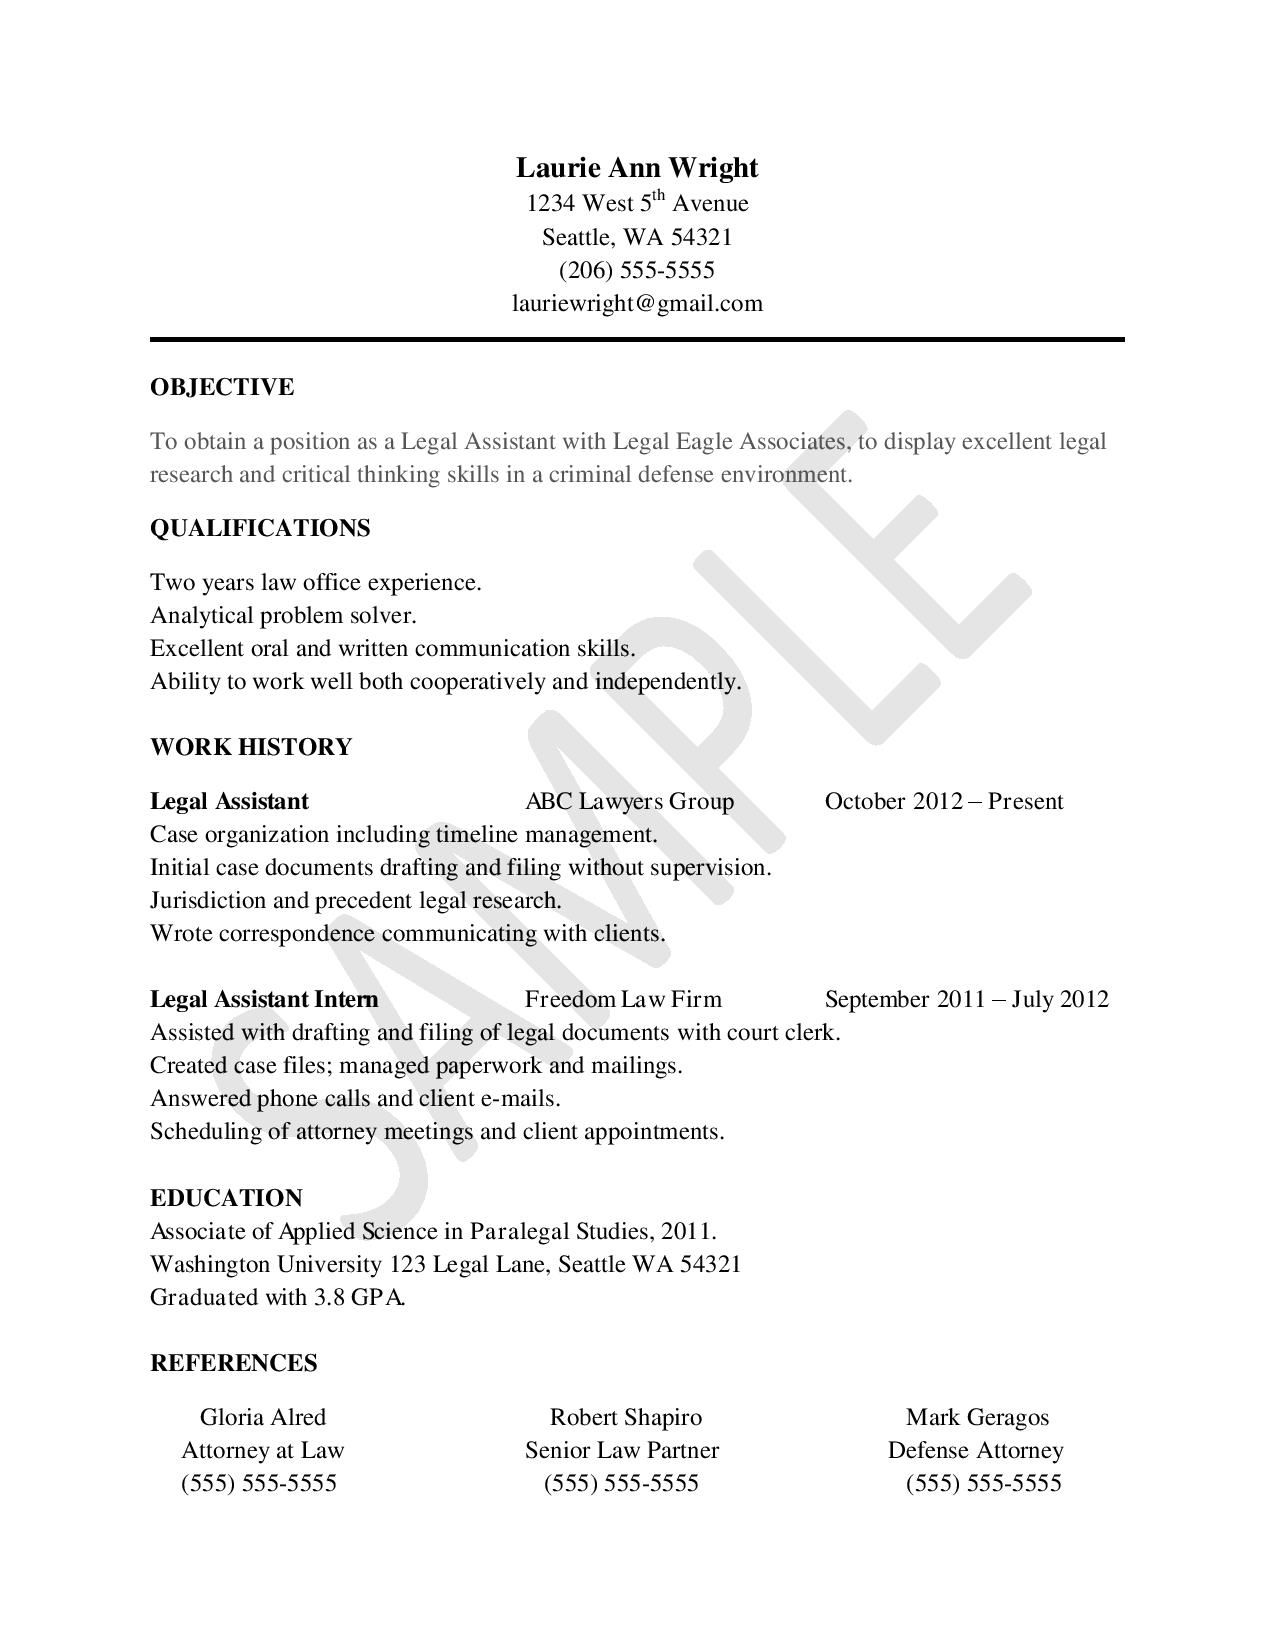 Sample resume for legal assistants legalsistantfo sample resume for legal assistants yelopaper Choice Image